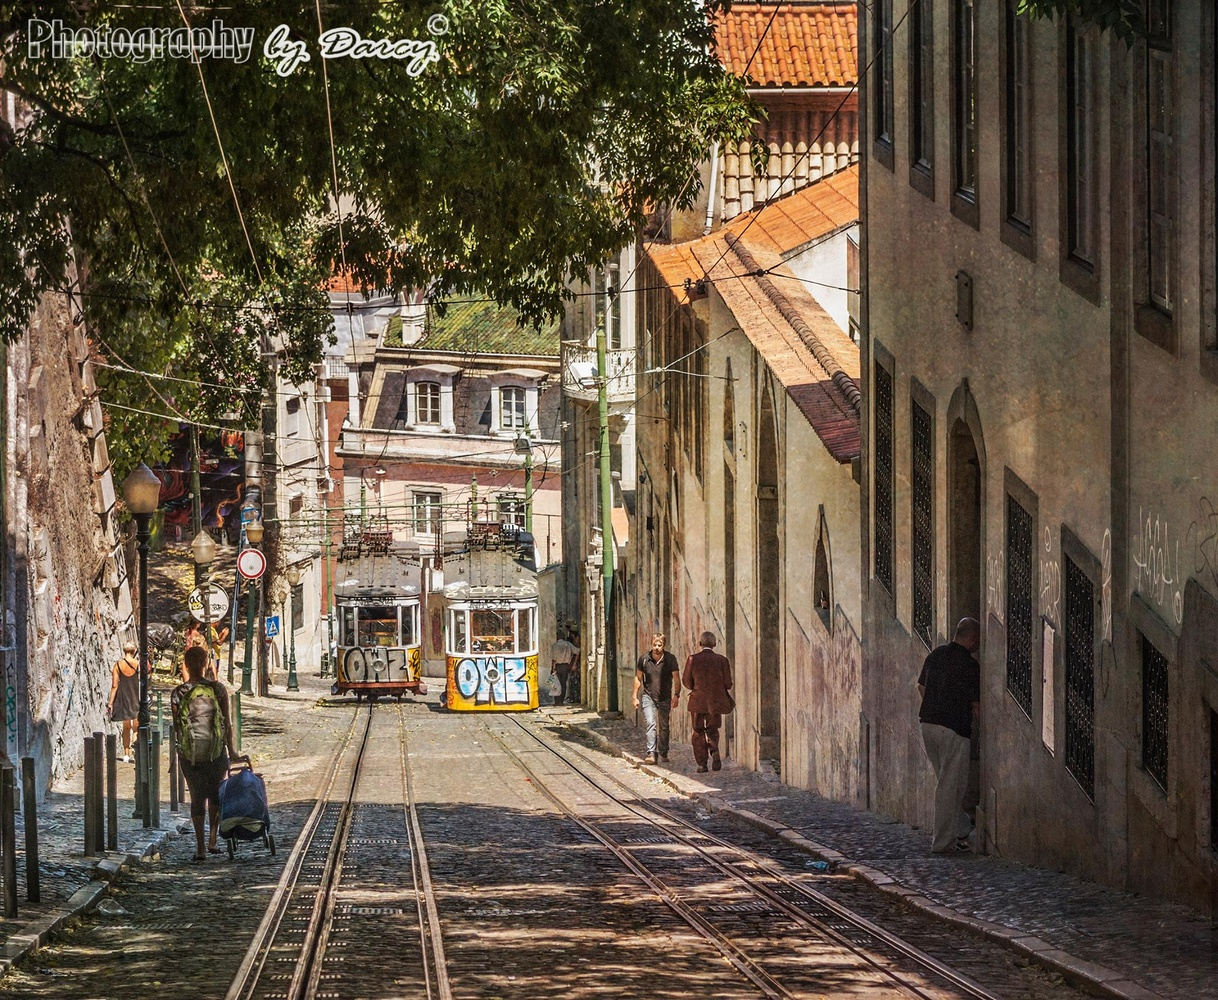 Trams that pass in the day by Darcy Brown